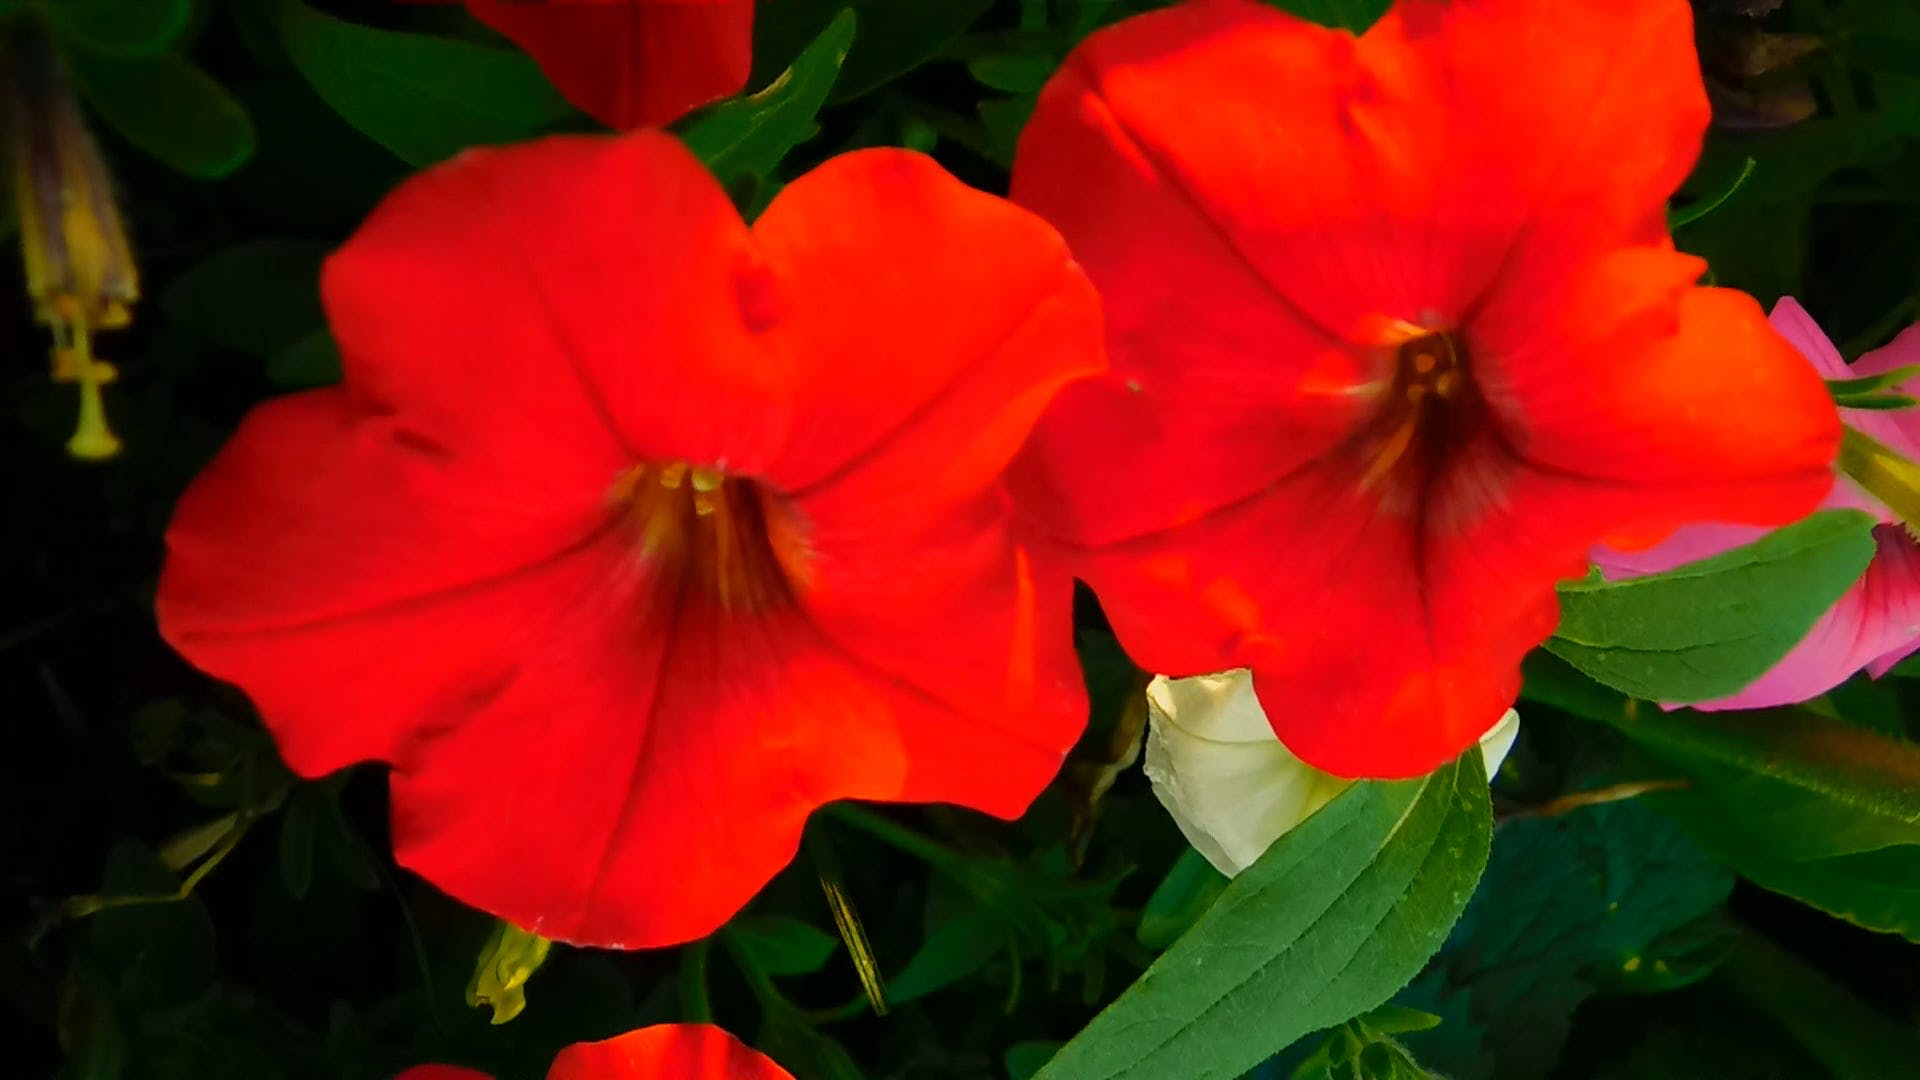 Close-Up Video of Red Petunia Flowers